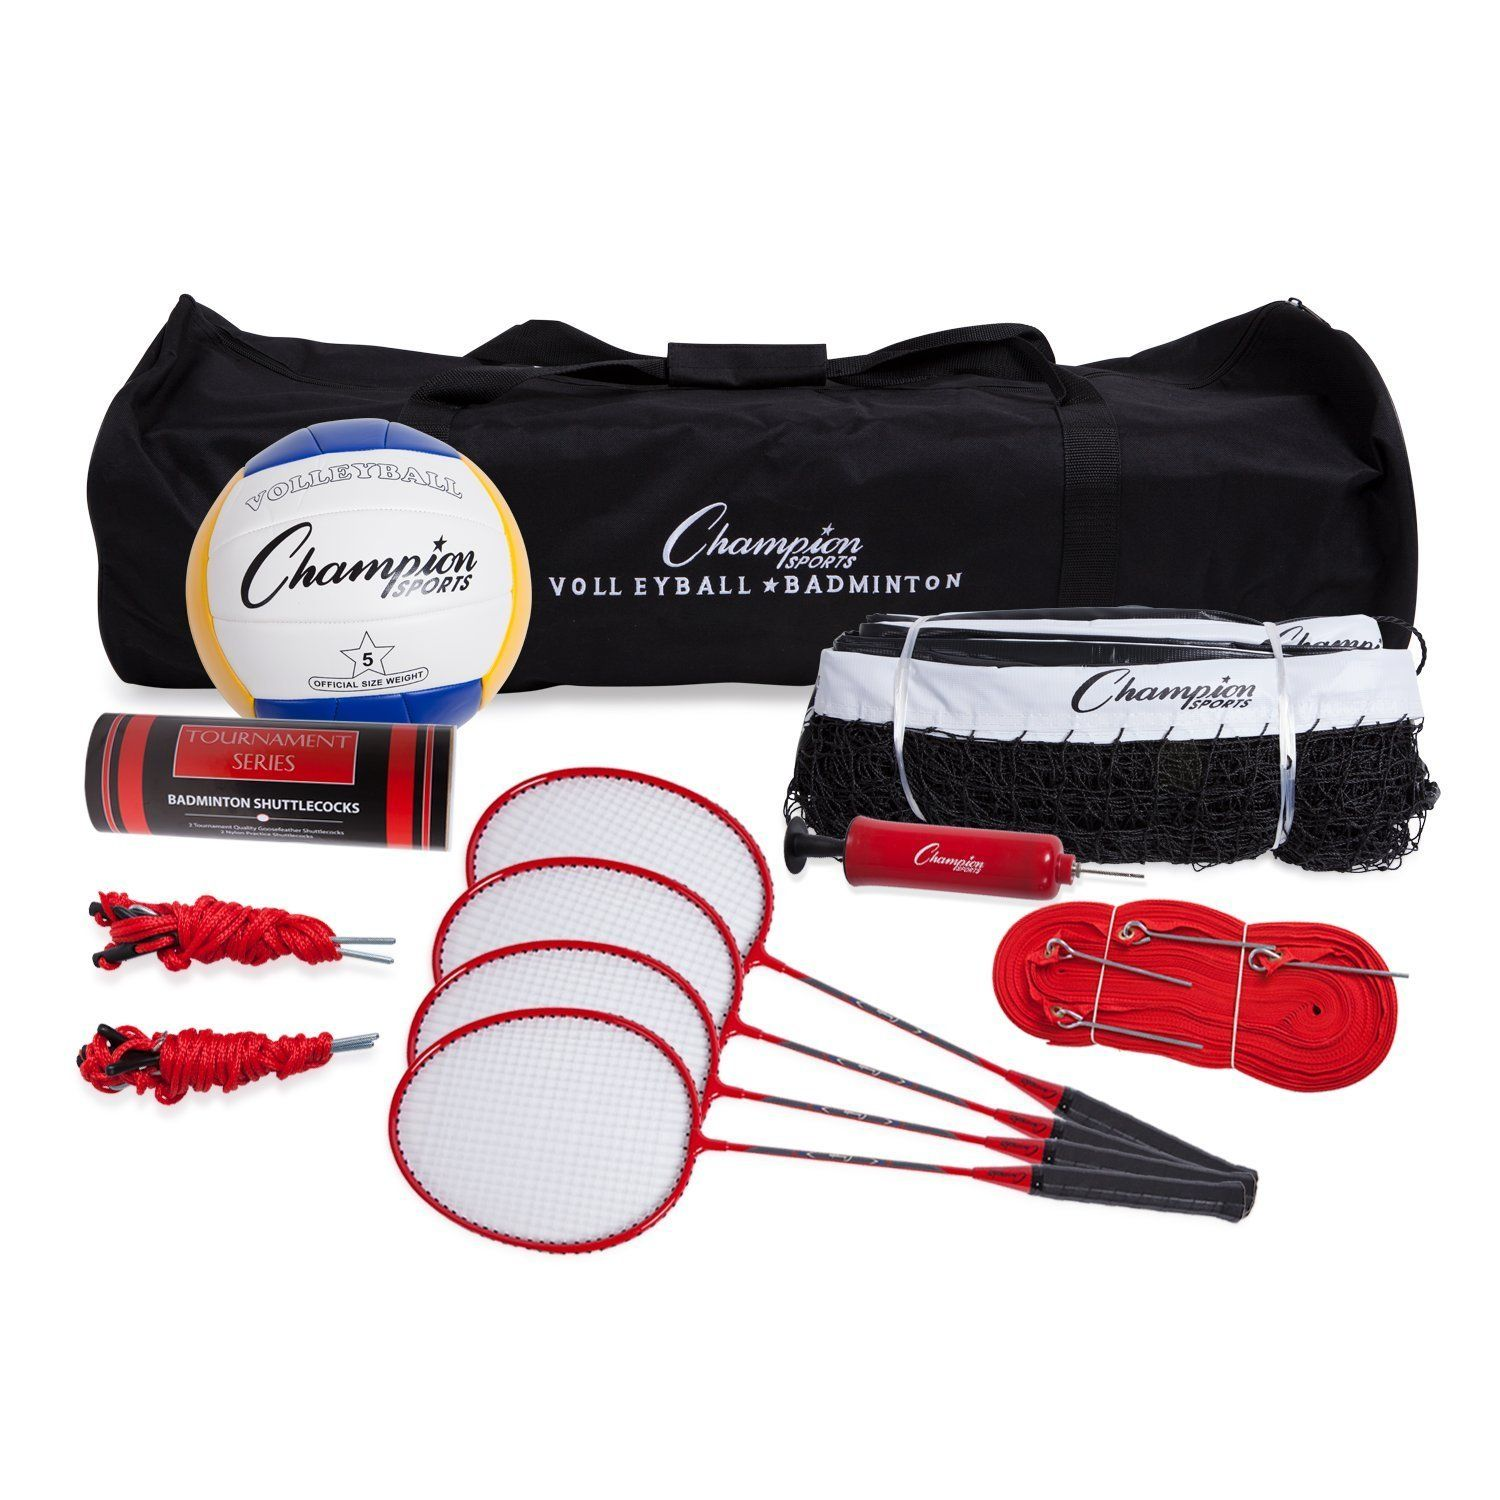 Best Badminton Set Sports Tournaments Badminton Set Sport Volleyball